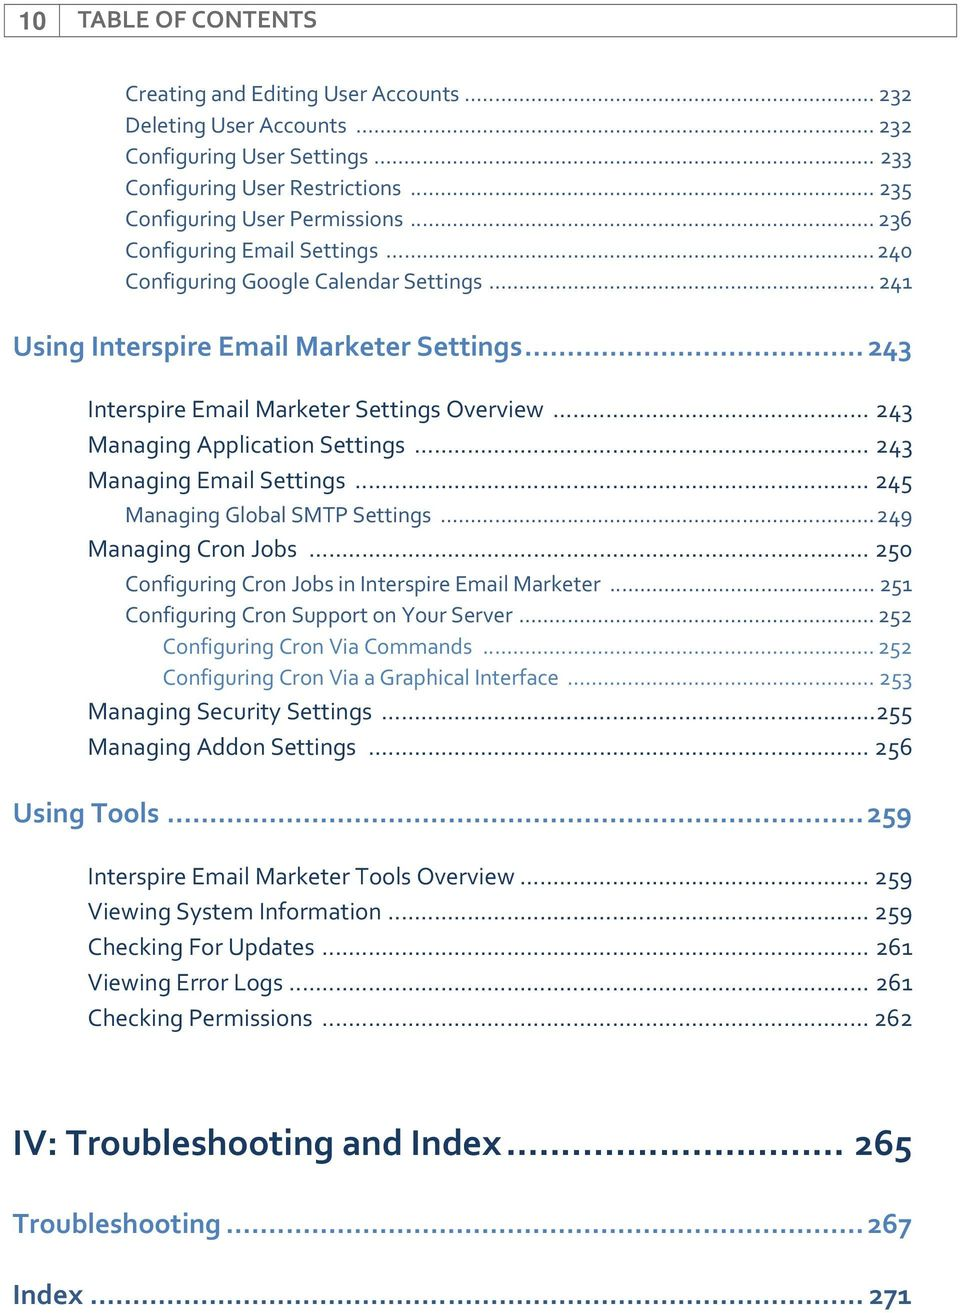 .. 243 Managing Application Settings... 243 Managing Email Settings... 245 Managing Global SMTP Settings...249 Managing Cron Jobs... 250 Configuring Cron Jobs in Interspire Email Marketer.